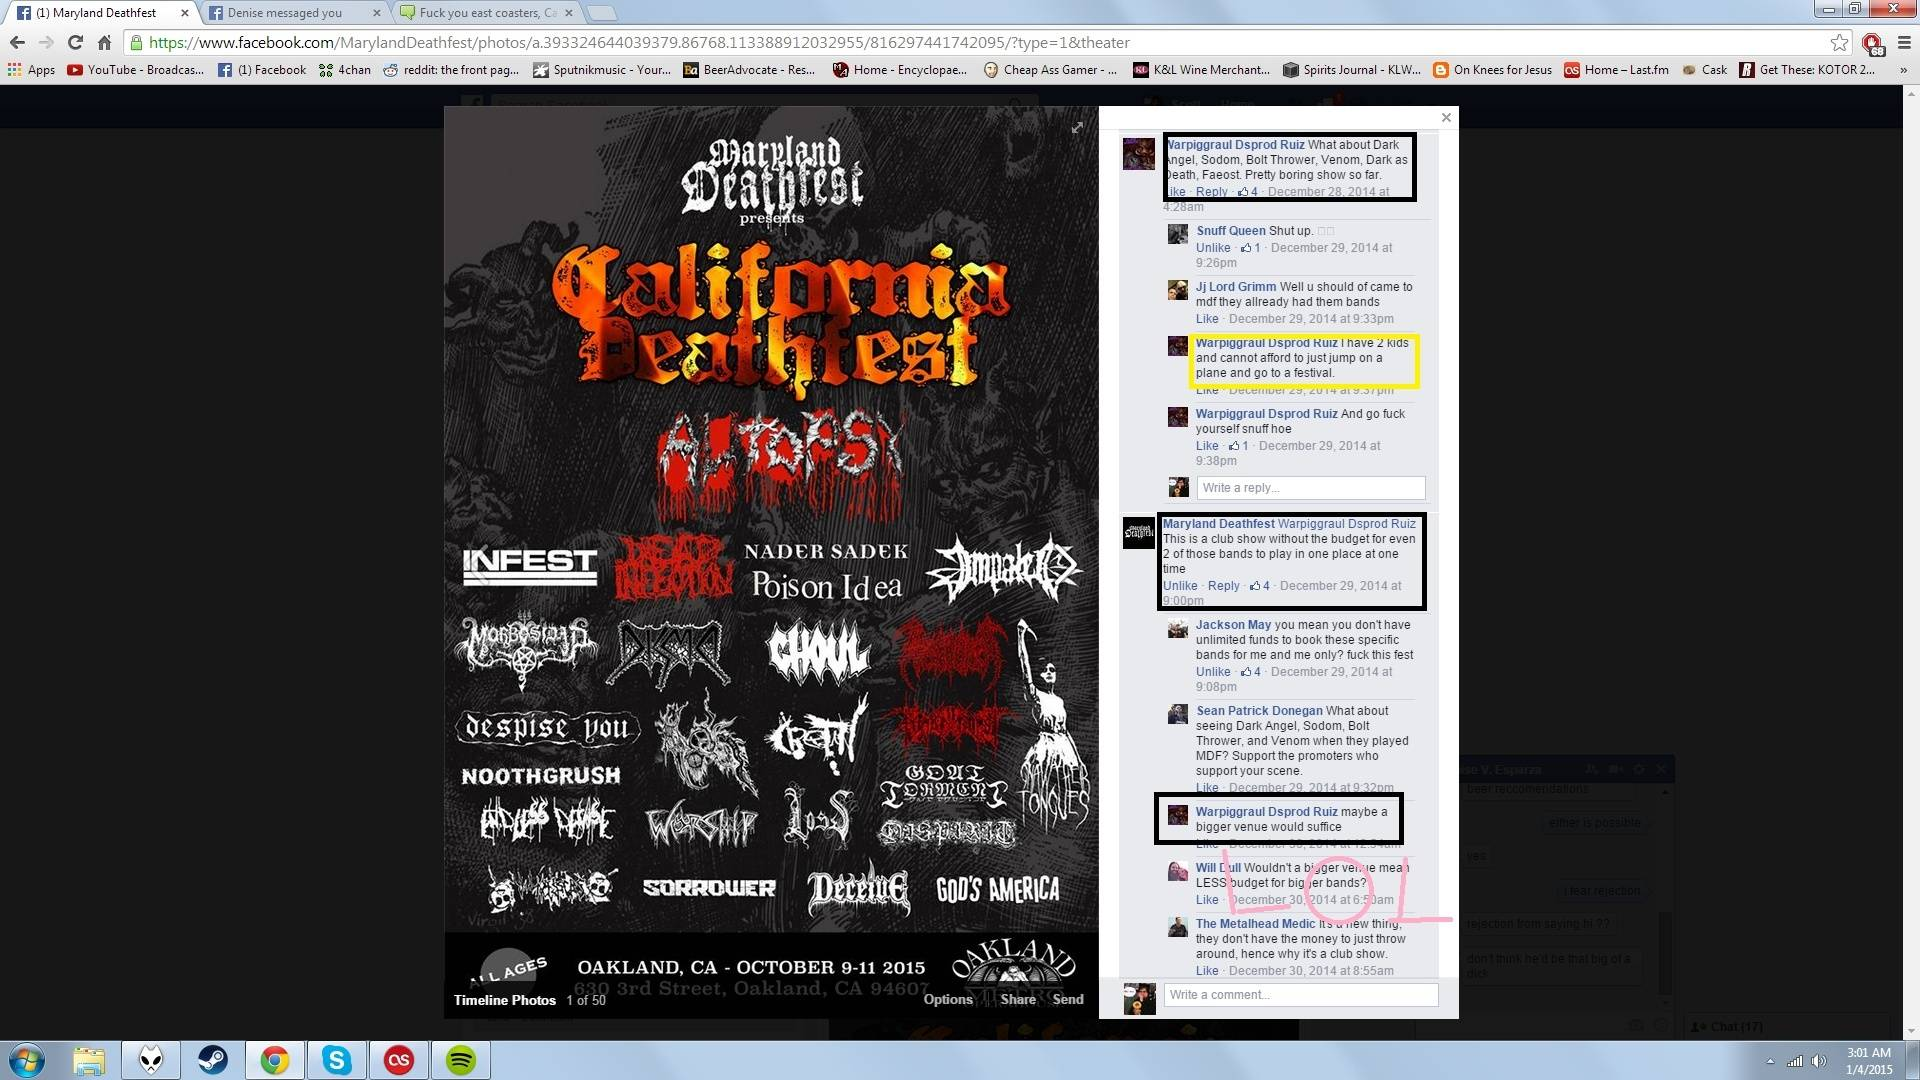 Fuck you east coasters, California Deathfest next year Metal_11